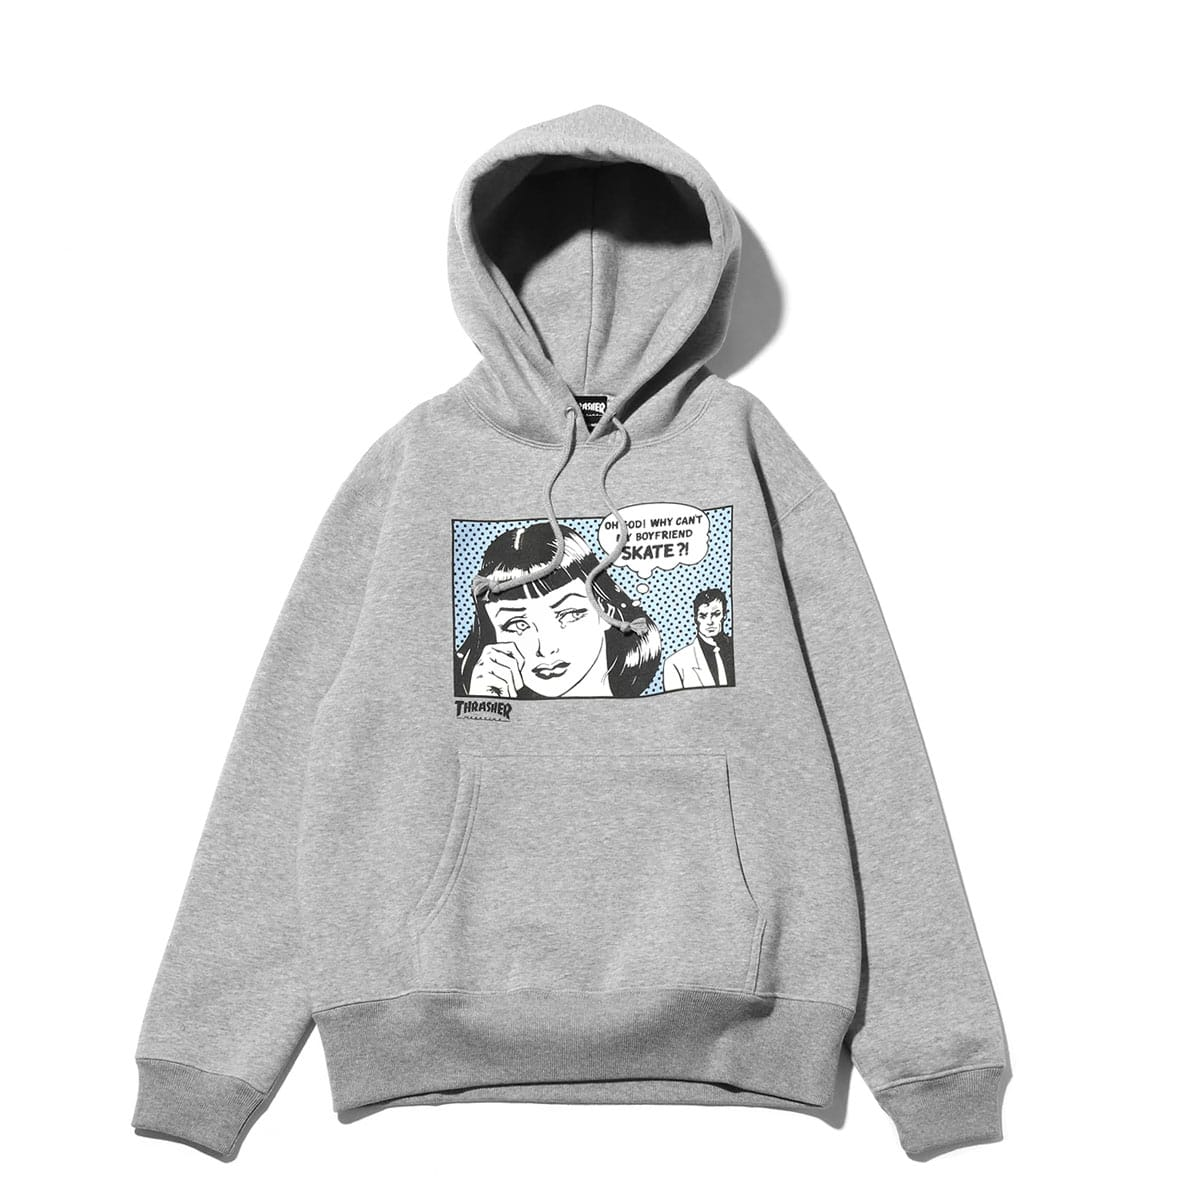 THRASHER BoyFriend HOODIE GRAY/HORIZON 18FW-I_photo_large